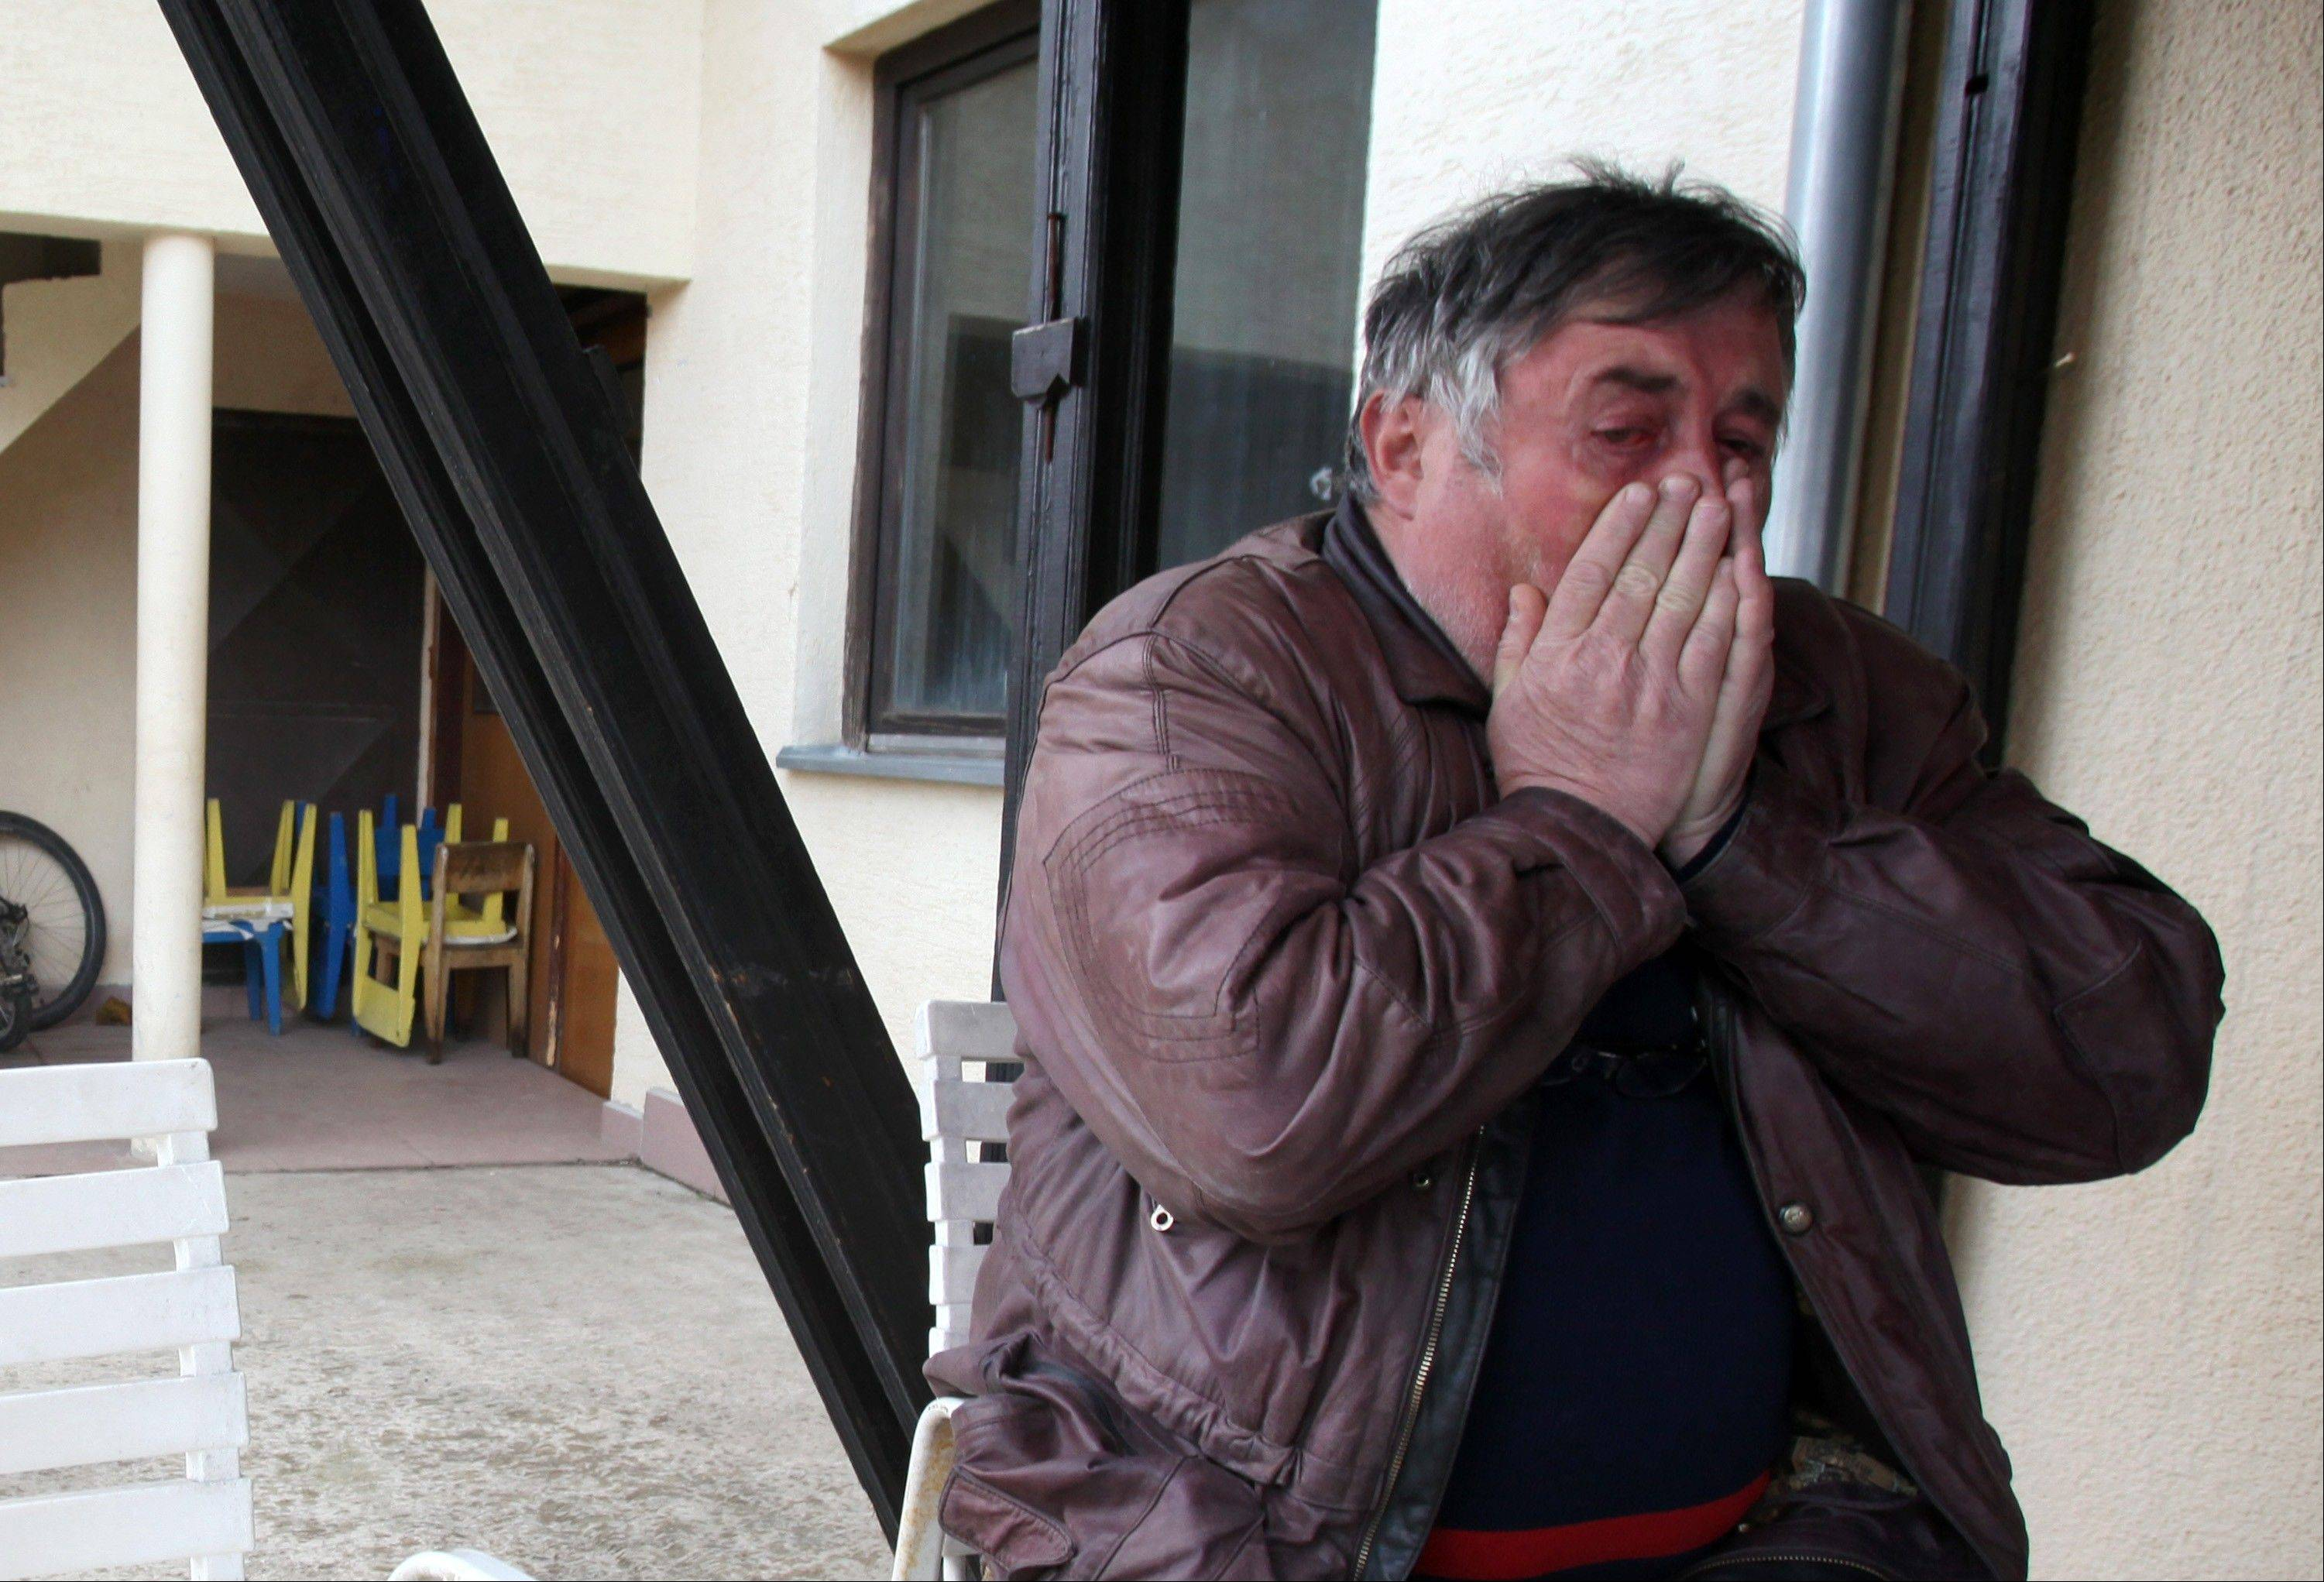 Radmilo Bogdanovic, brother of Ljubisa Bogdanovic cries in village of Velika Ivanca, Serbia, Tuesday, April 9, 2013. Ljubisa Bogdanovic a 60-year-old man gunned down 13 people, including a baby, in a house-to-house rampage in a quiet village on Tuesday before trying to kill himself and his wife, police and hospital officials said. Belgrade emergency hospital spokeswoman Nada Macura said the man, identified as Ljubisa Bogdanovic, used a handgun in the shooting spree at five houses. The dead included six women.